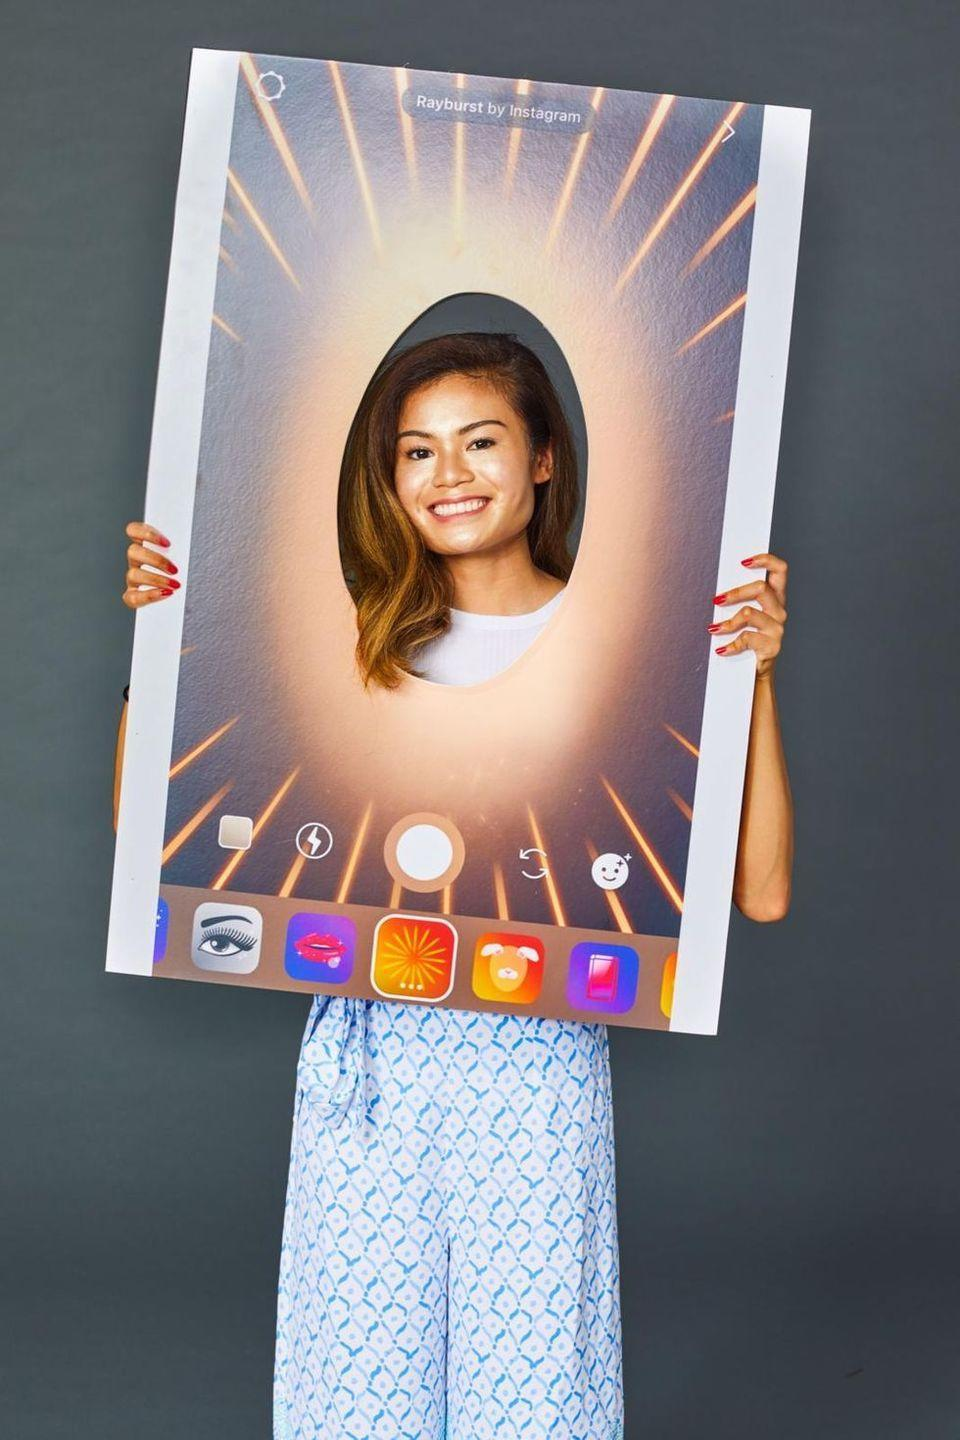 """<p>Everyone's played around with those fun Instagram filters—why not wear one in real life? All you'll have to do to bring this fun costume to life is screenshot your Instagram app, then enlarge the photo at your local office supply store. </p><p><strong>Get the tutorial at <a href=""""https://www.goodhousekeeping.com/holidays/halloween-ideas/g23549593/meme-costumes/"""" rel=""""nofollow noopener"""" target=""""_blank"""" data-ylk=""""slk:Good Housekeeping"""" class=""""link rapid-noclick-resp"""">Good Housekeeping</a>.</strong></p><p><a class=""""link rapid-noclick-resp"""" href=""""https://www.amazon.com/Beauty-Champagne-Rose-Luminizer-Women/dp/B07BM2XWL5/?tag=syn-yahoo-20&ascsubtag=%5Bartid%7C10050.g.22118522%5Bsrc%7Cyahoo-us"""" rel=""""nofollow noopener"""" target=""""_blank"""" data-ylk=""""slk:SHOP HIGHLIGHTER"""">SHOP HIGHLIGHTER</a></p>"""